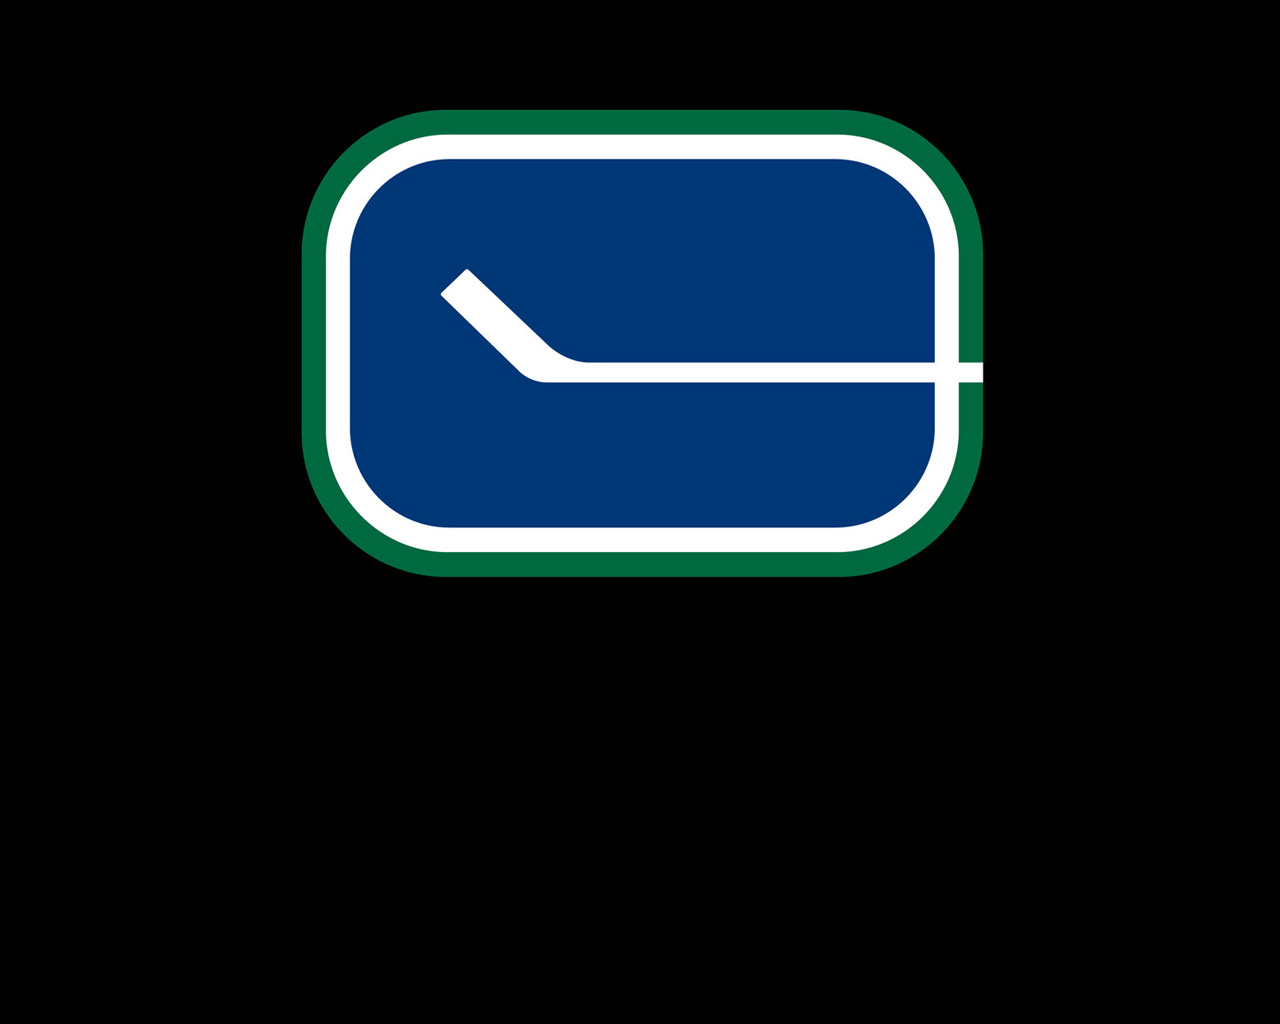 Vancouver Canucks Team Logo Wallpapers All Monitor Sizes Digital 1280x1024